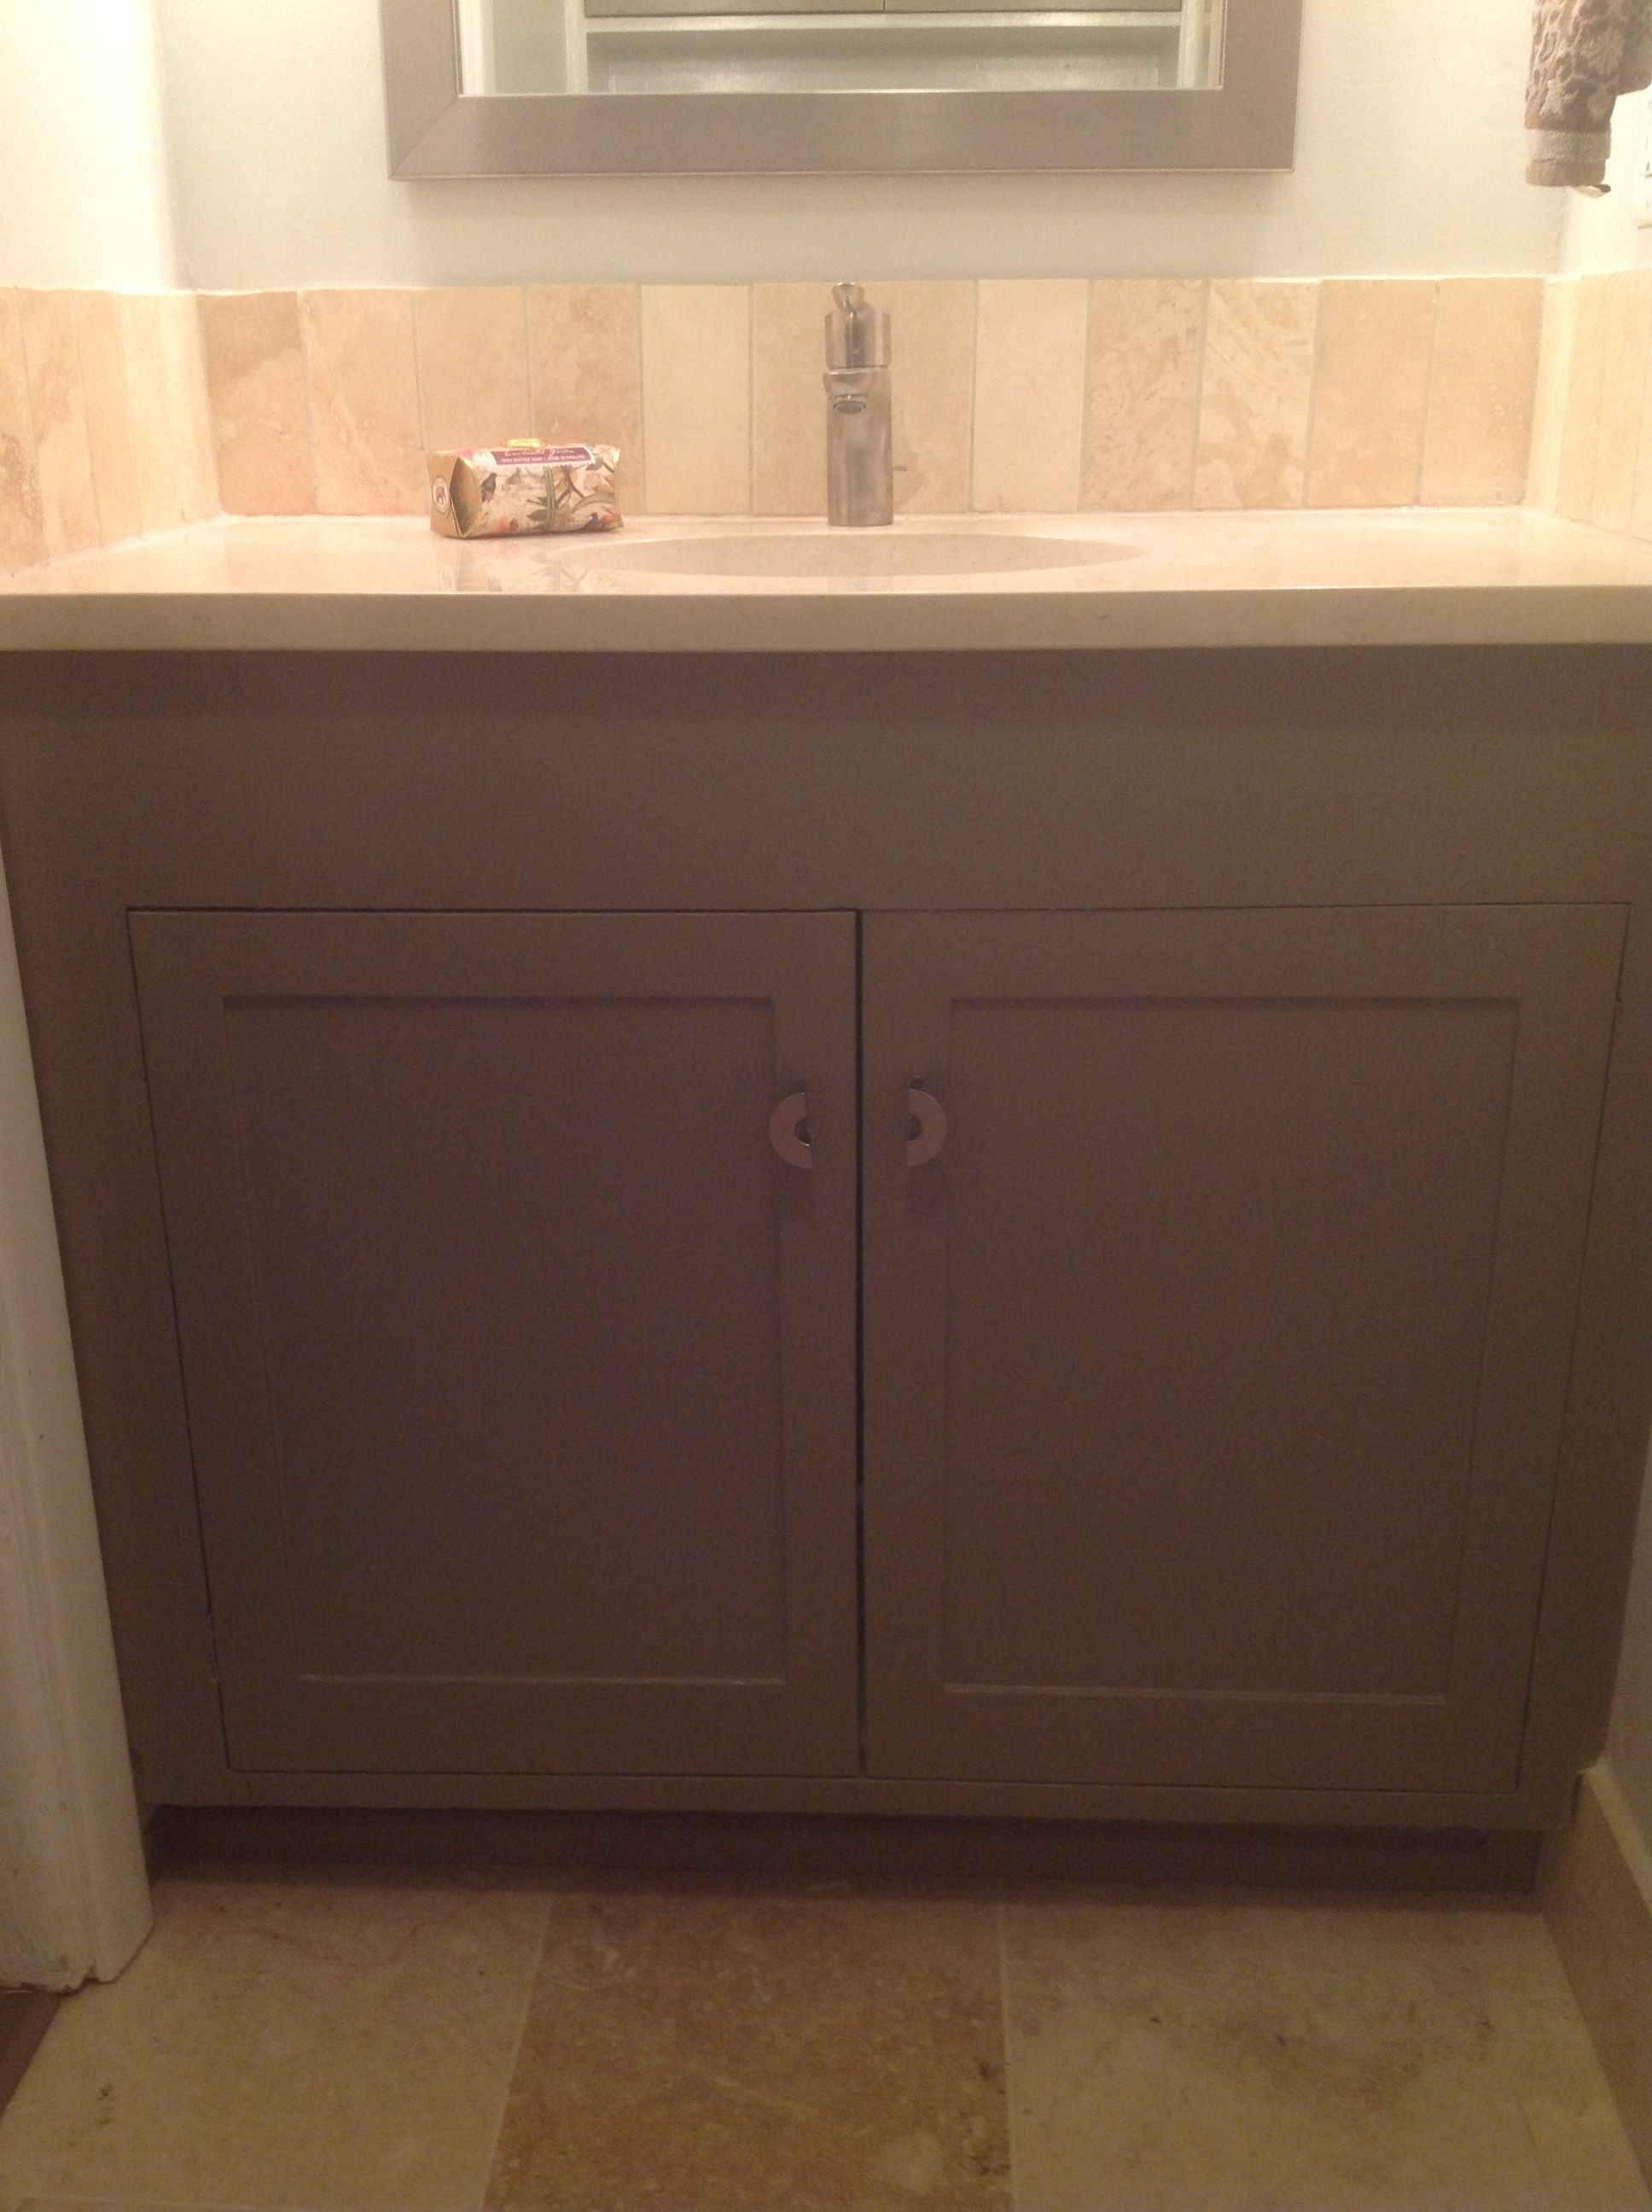 Paint color for both bathroom cabinets is Sherwin Williams Foothills ...